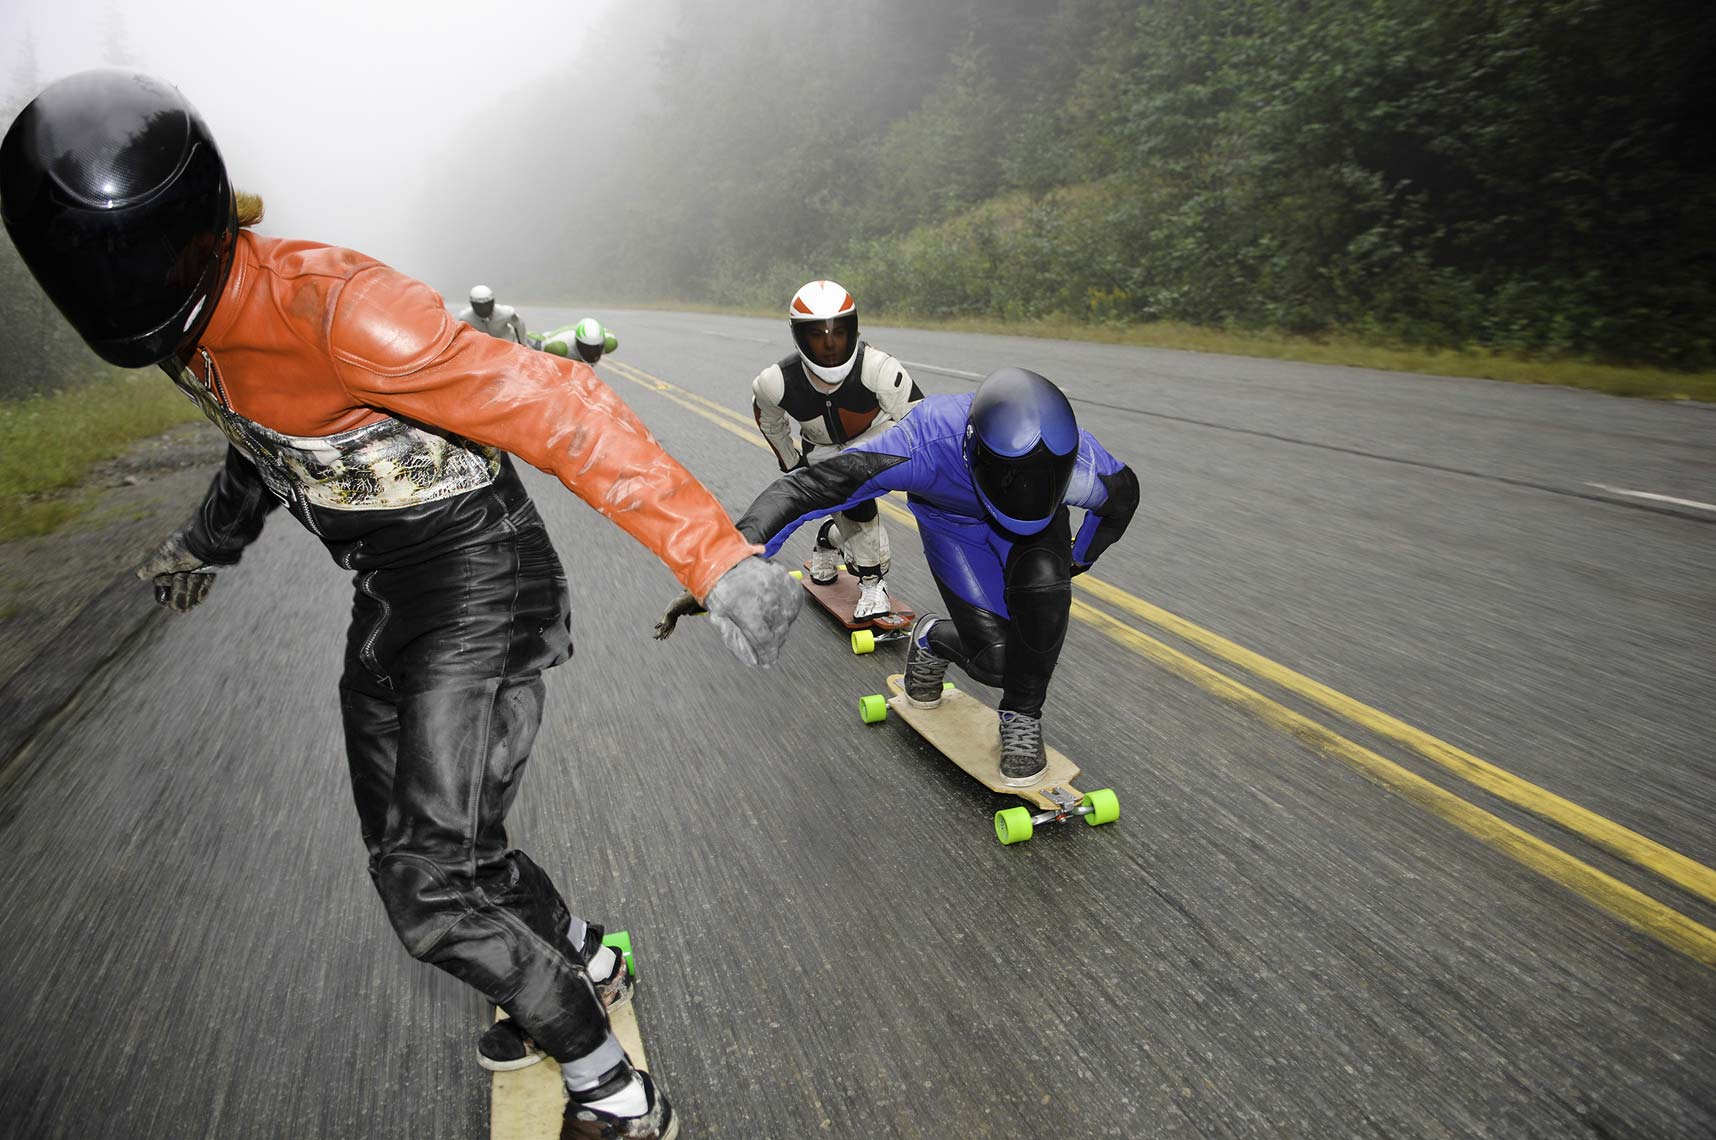 longboarders on road